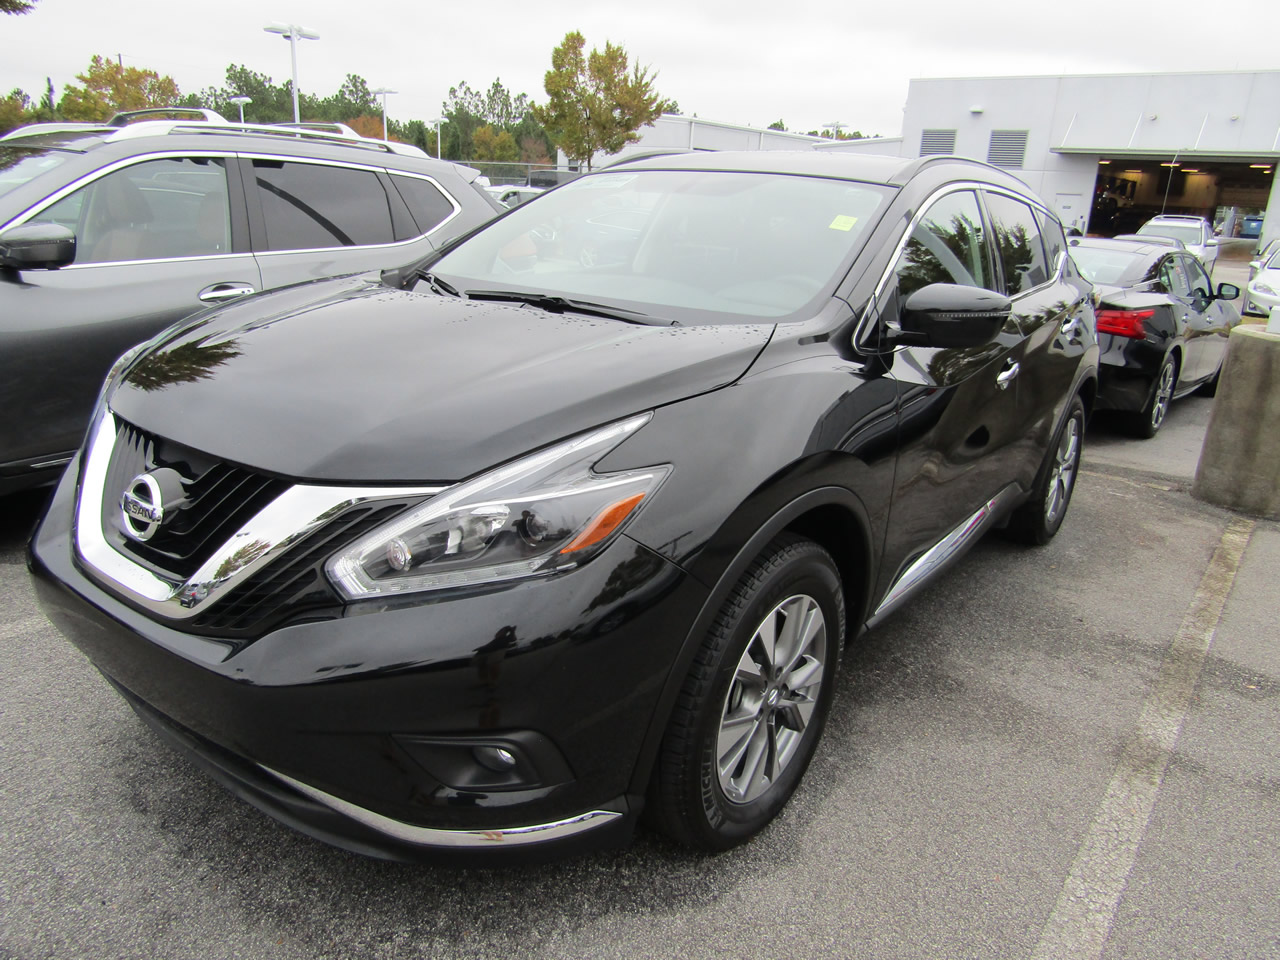 used 2018 nissan murano sv vin 5n1az2mg4jn114404 columbia sc 29223 dick smith nissan of columbia. Black Bedroom Furniture Sets. Home Design Ideas